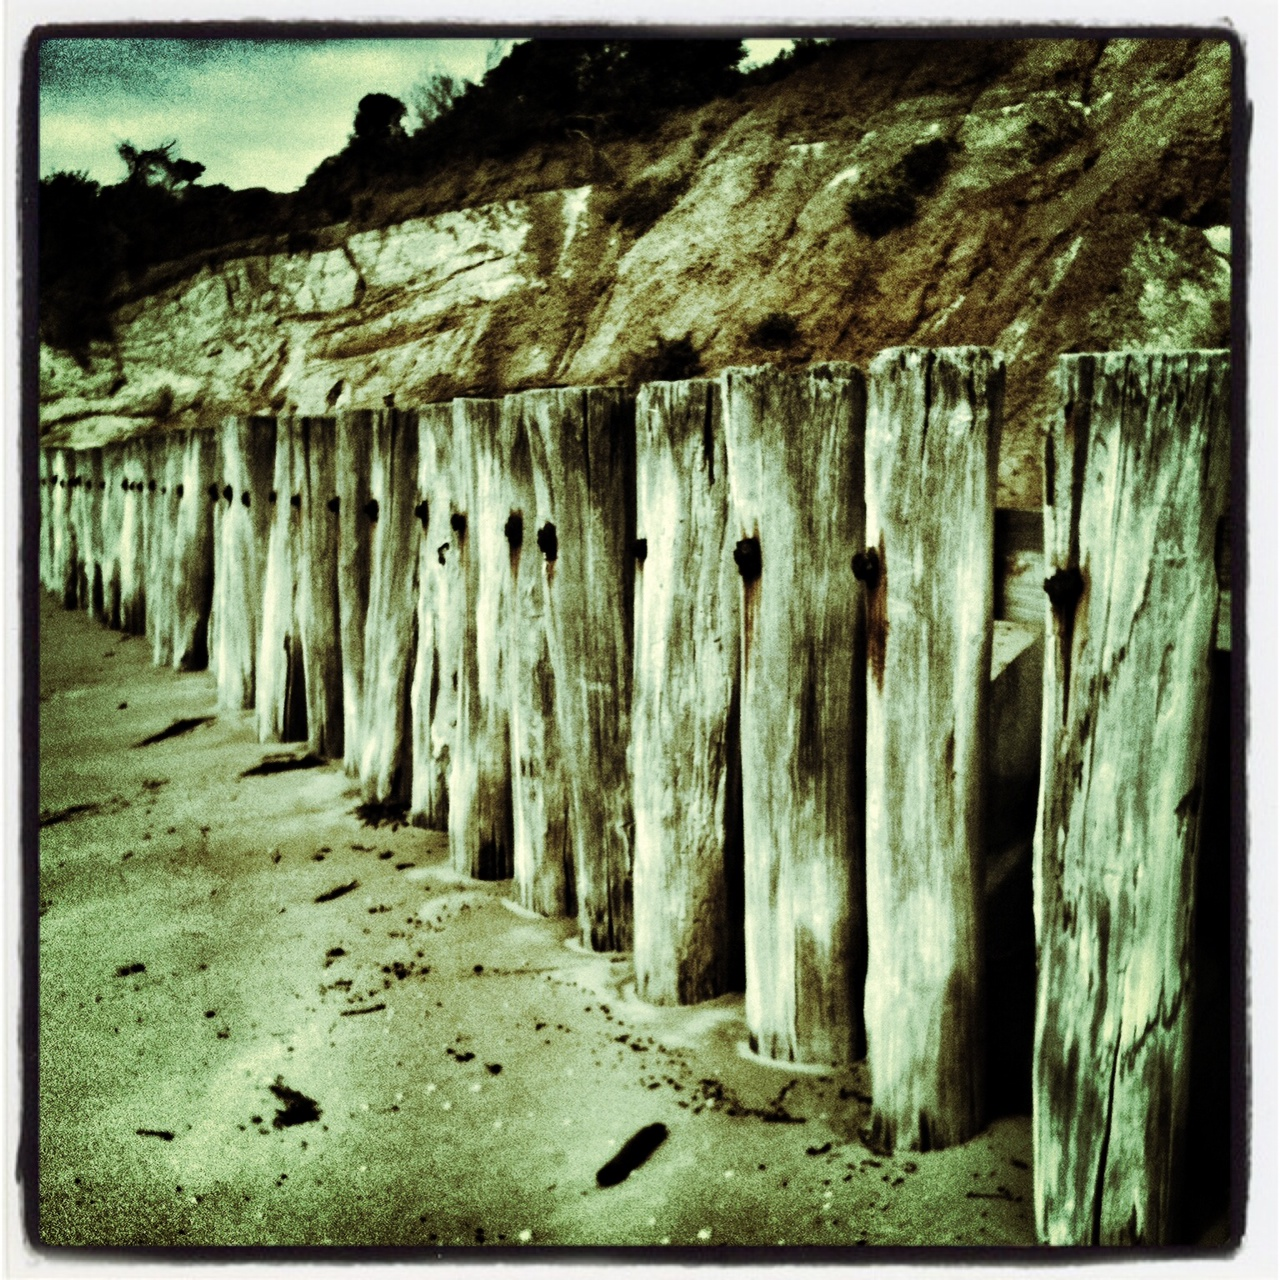 My photo of beach fence posts